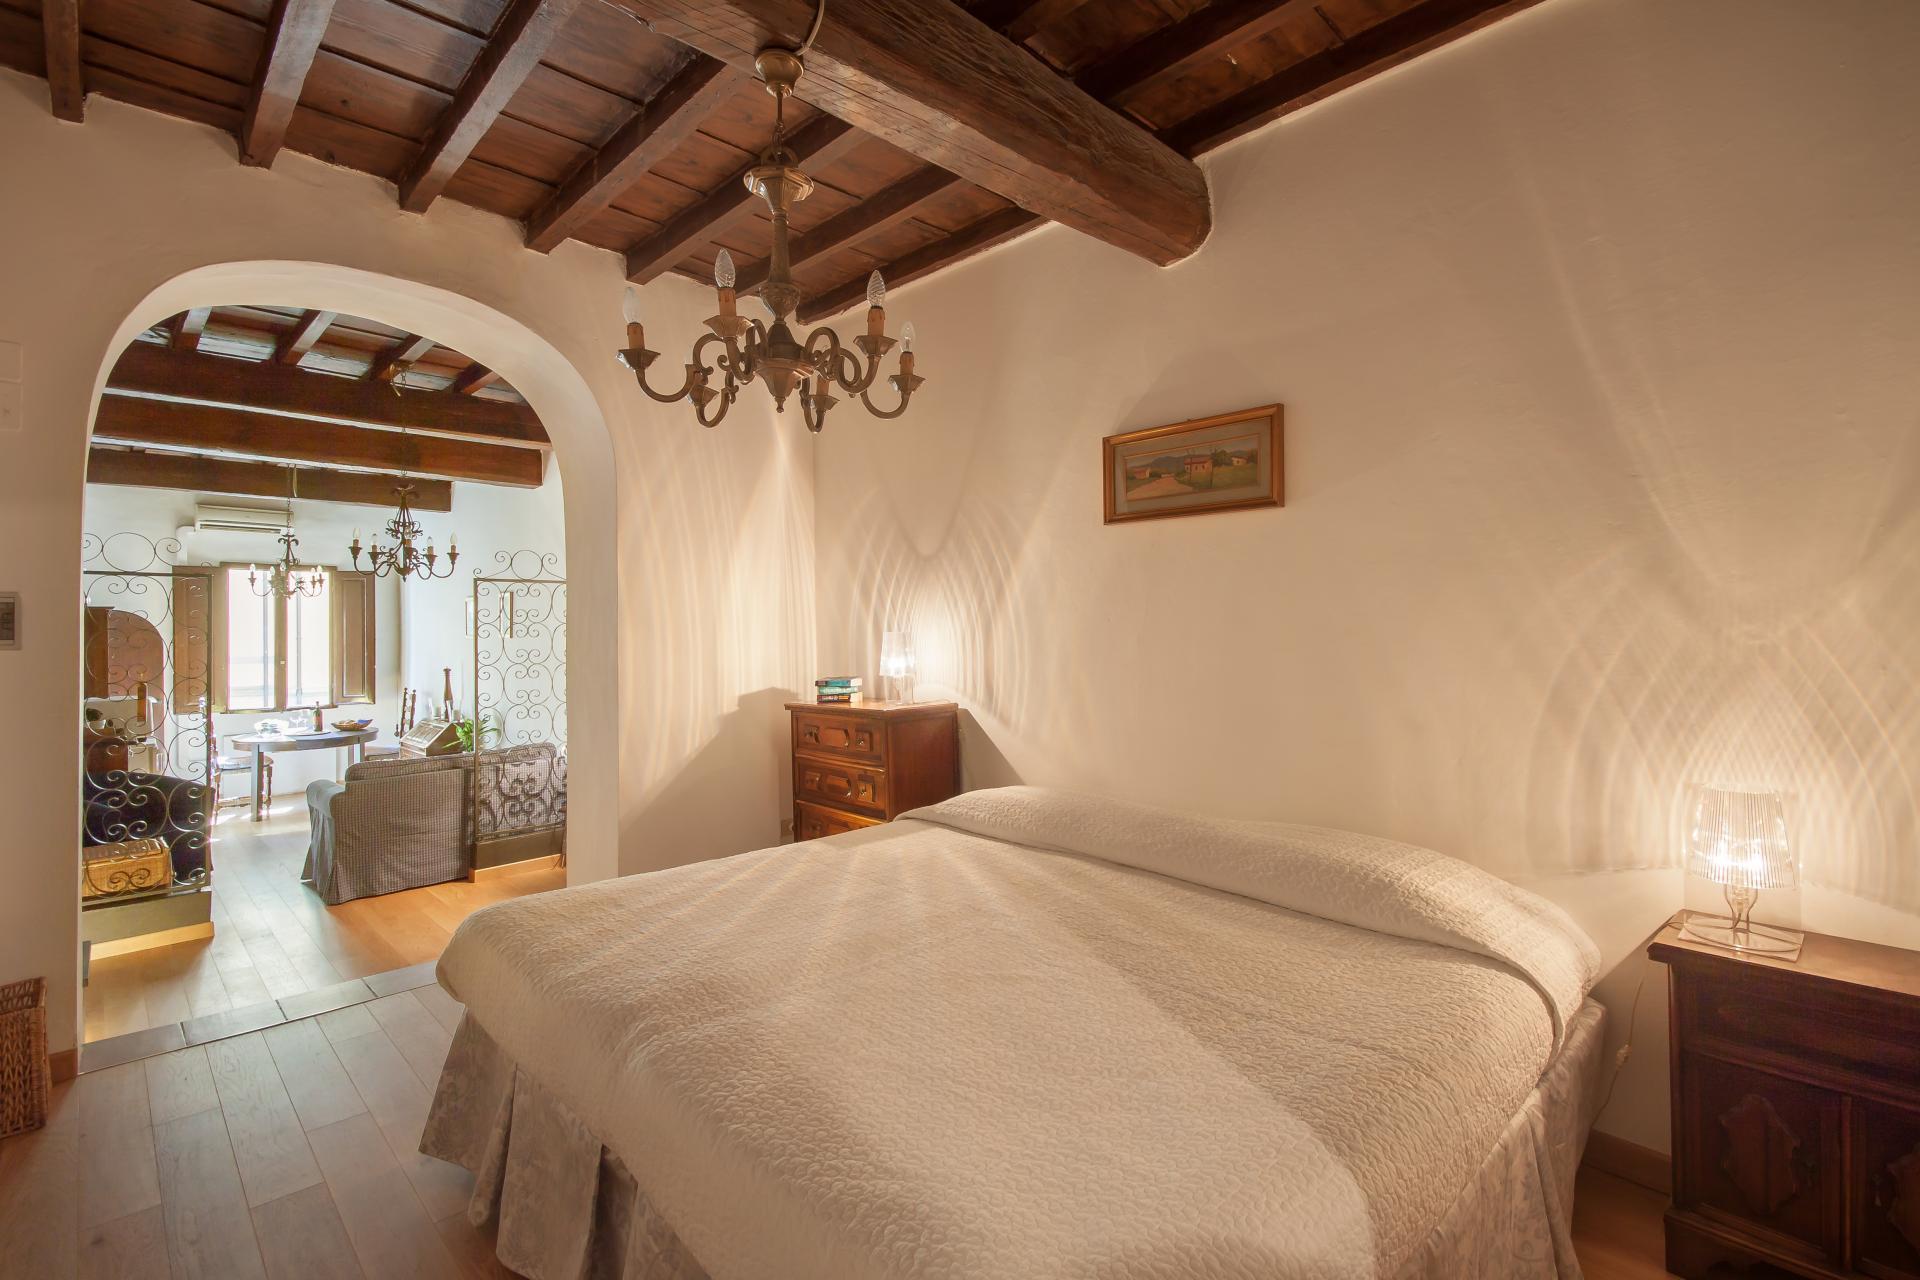 Bedroom at Borgo Ognissanti Apartment, Centre, Florence